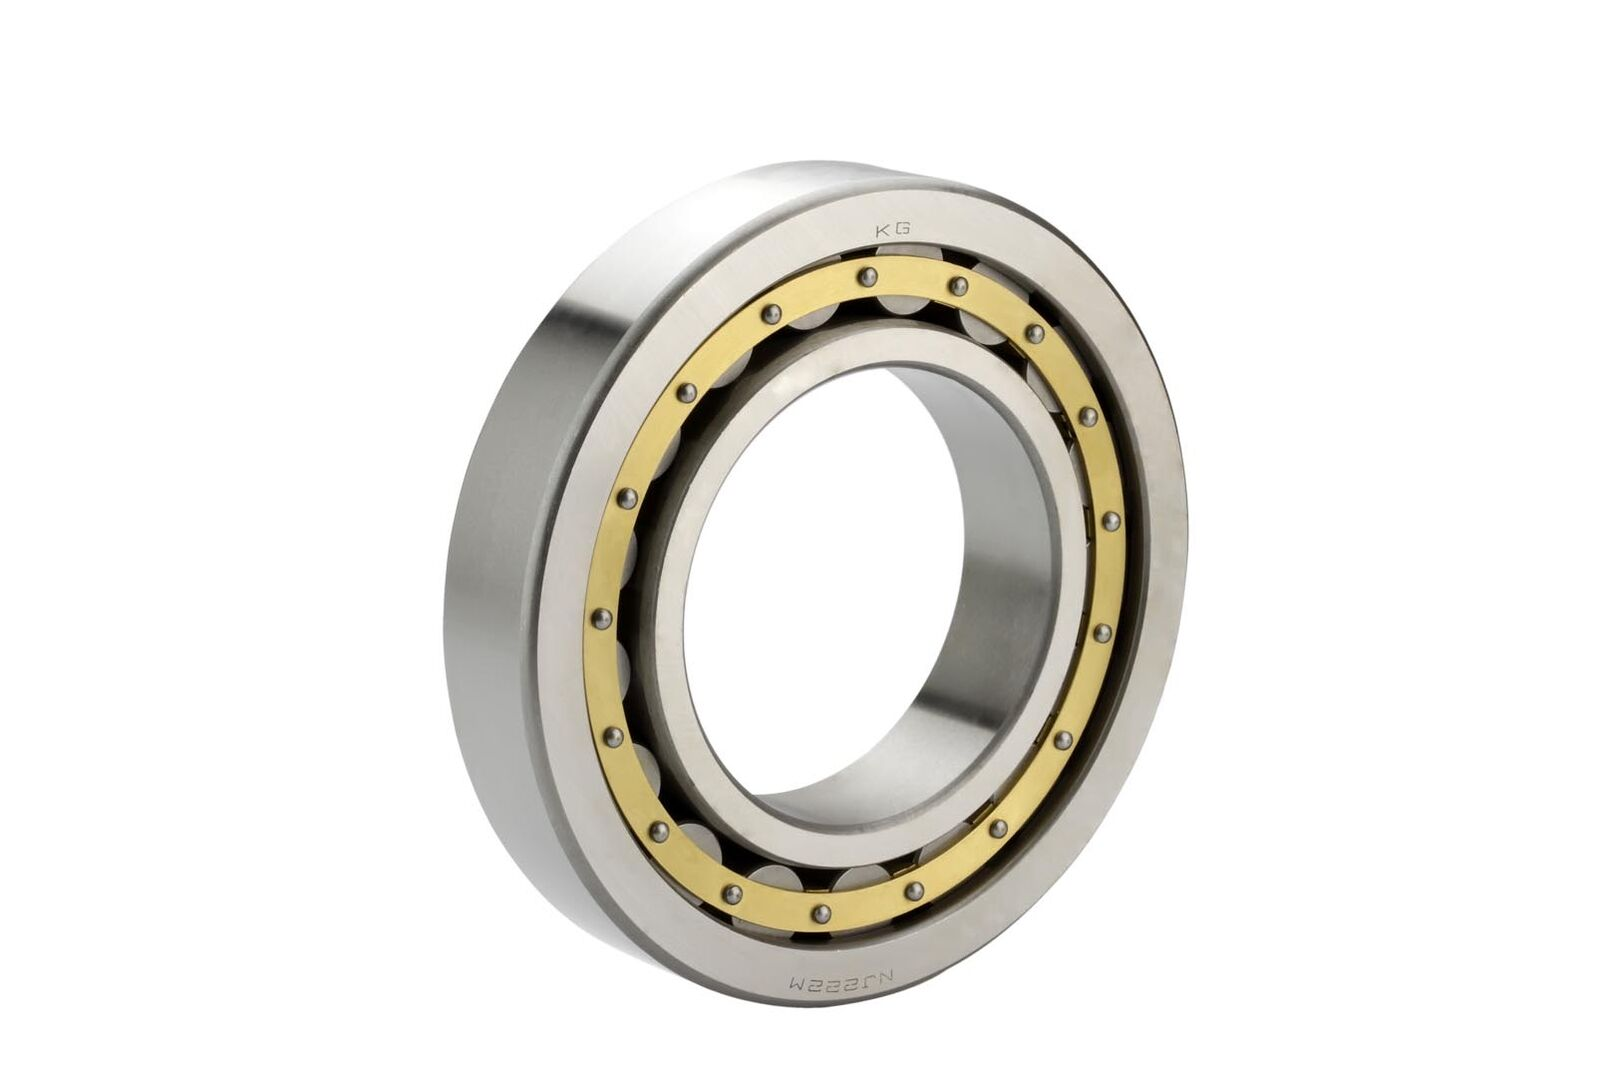 NJ312 WC3 NSK NSK WC3 Cylindrical Roller Bearings a45472